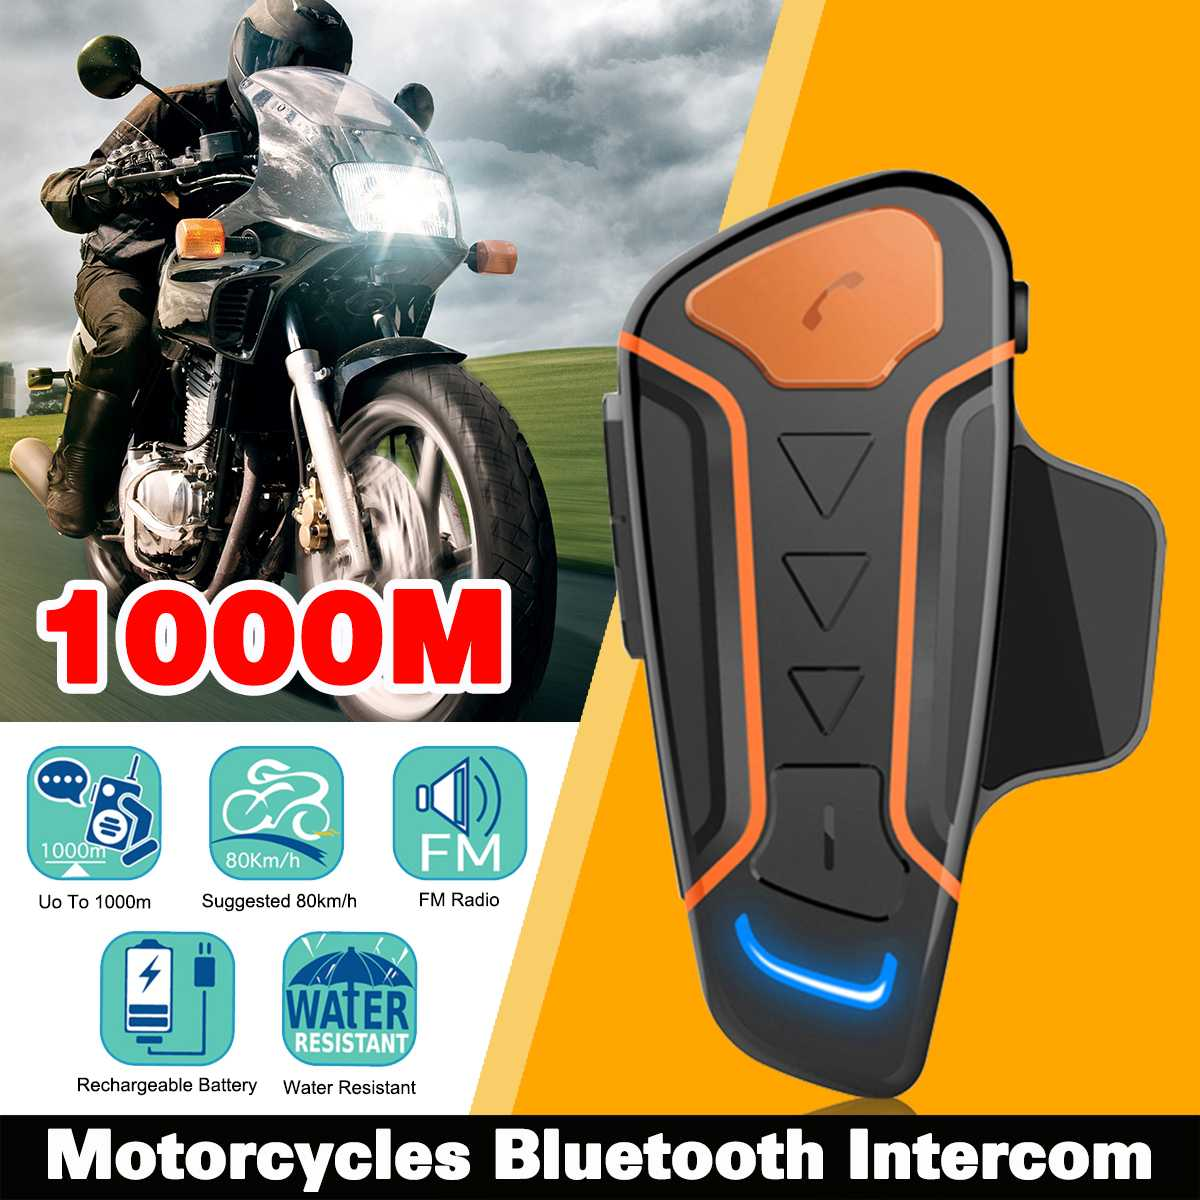 IP67 étanche 100% casque de Moto Interphone WT003 1000 m Moto Bluetooth Interphone casque avec Radio FM